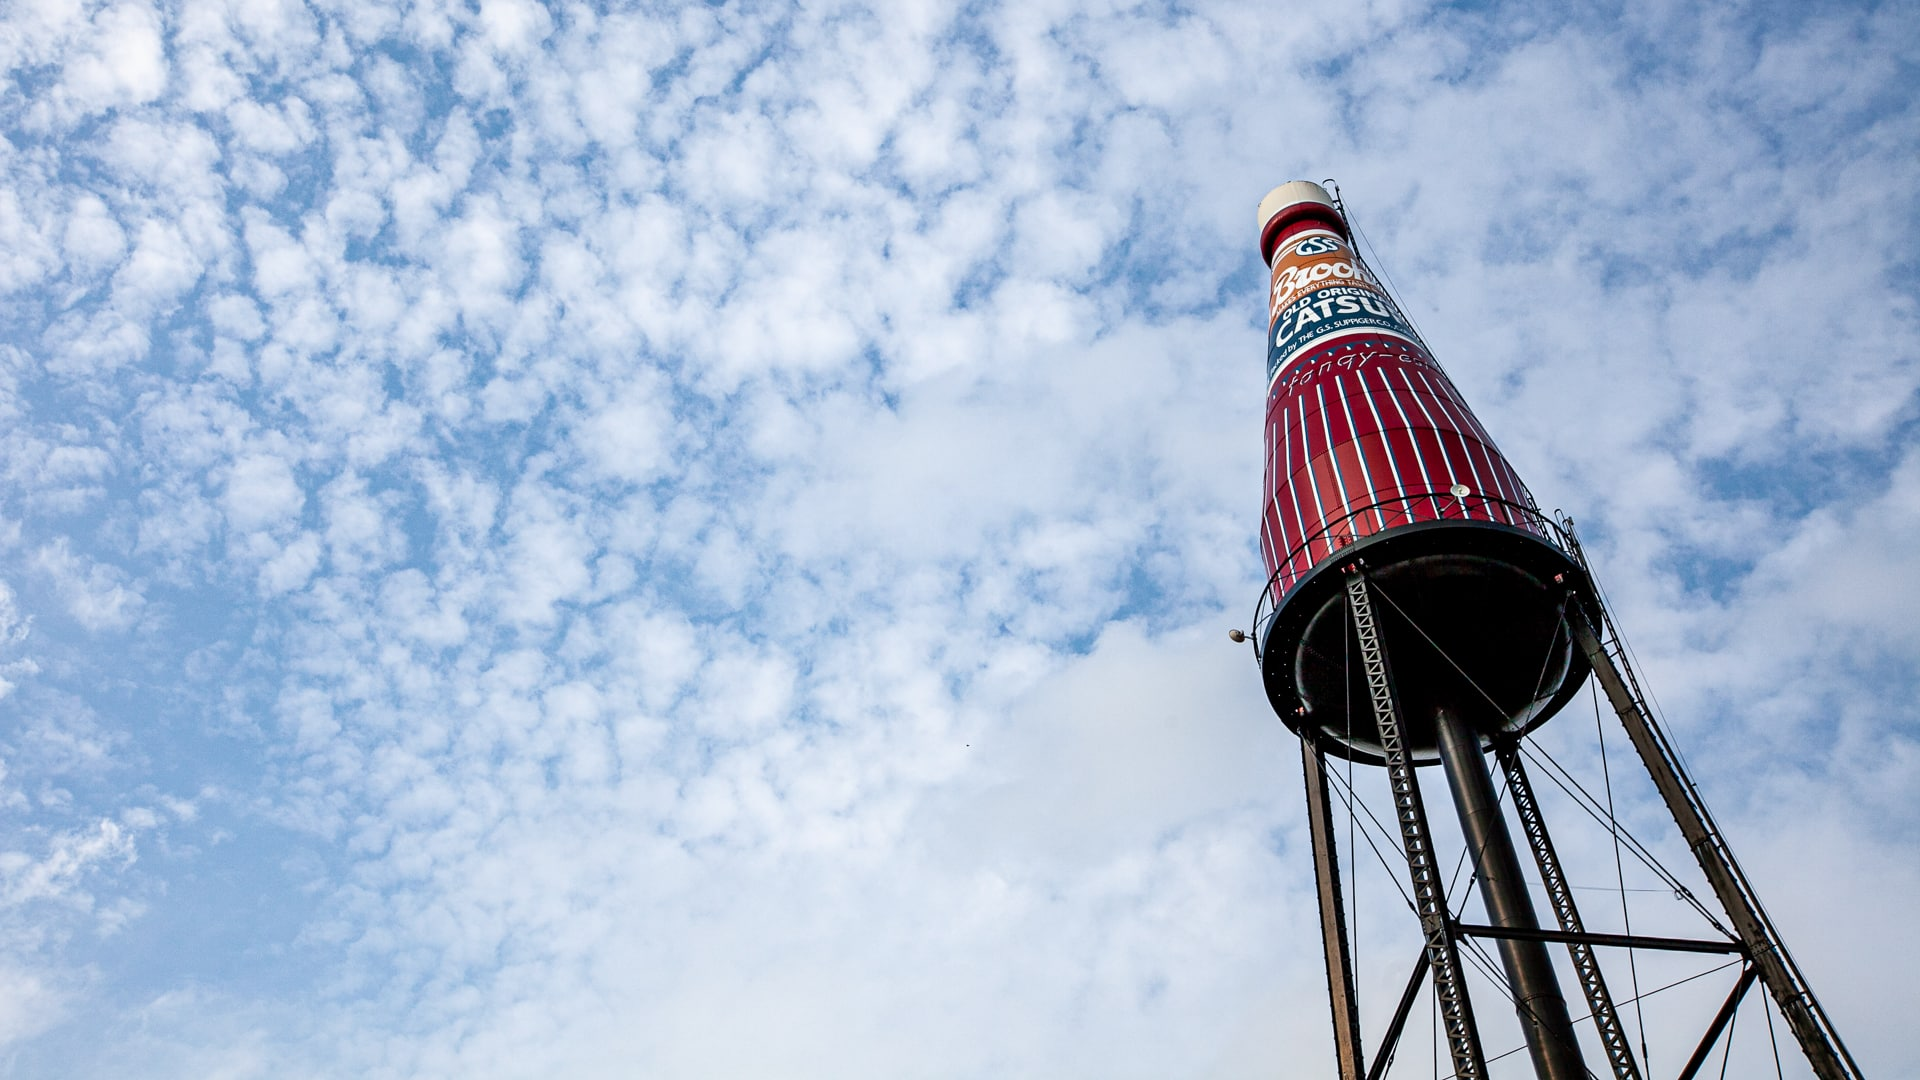 World's Largest Catsup Bottle -  Roadside Attraction Zoom Background Images for video conferencing backdrops.